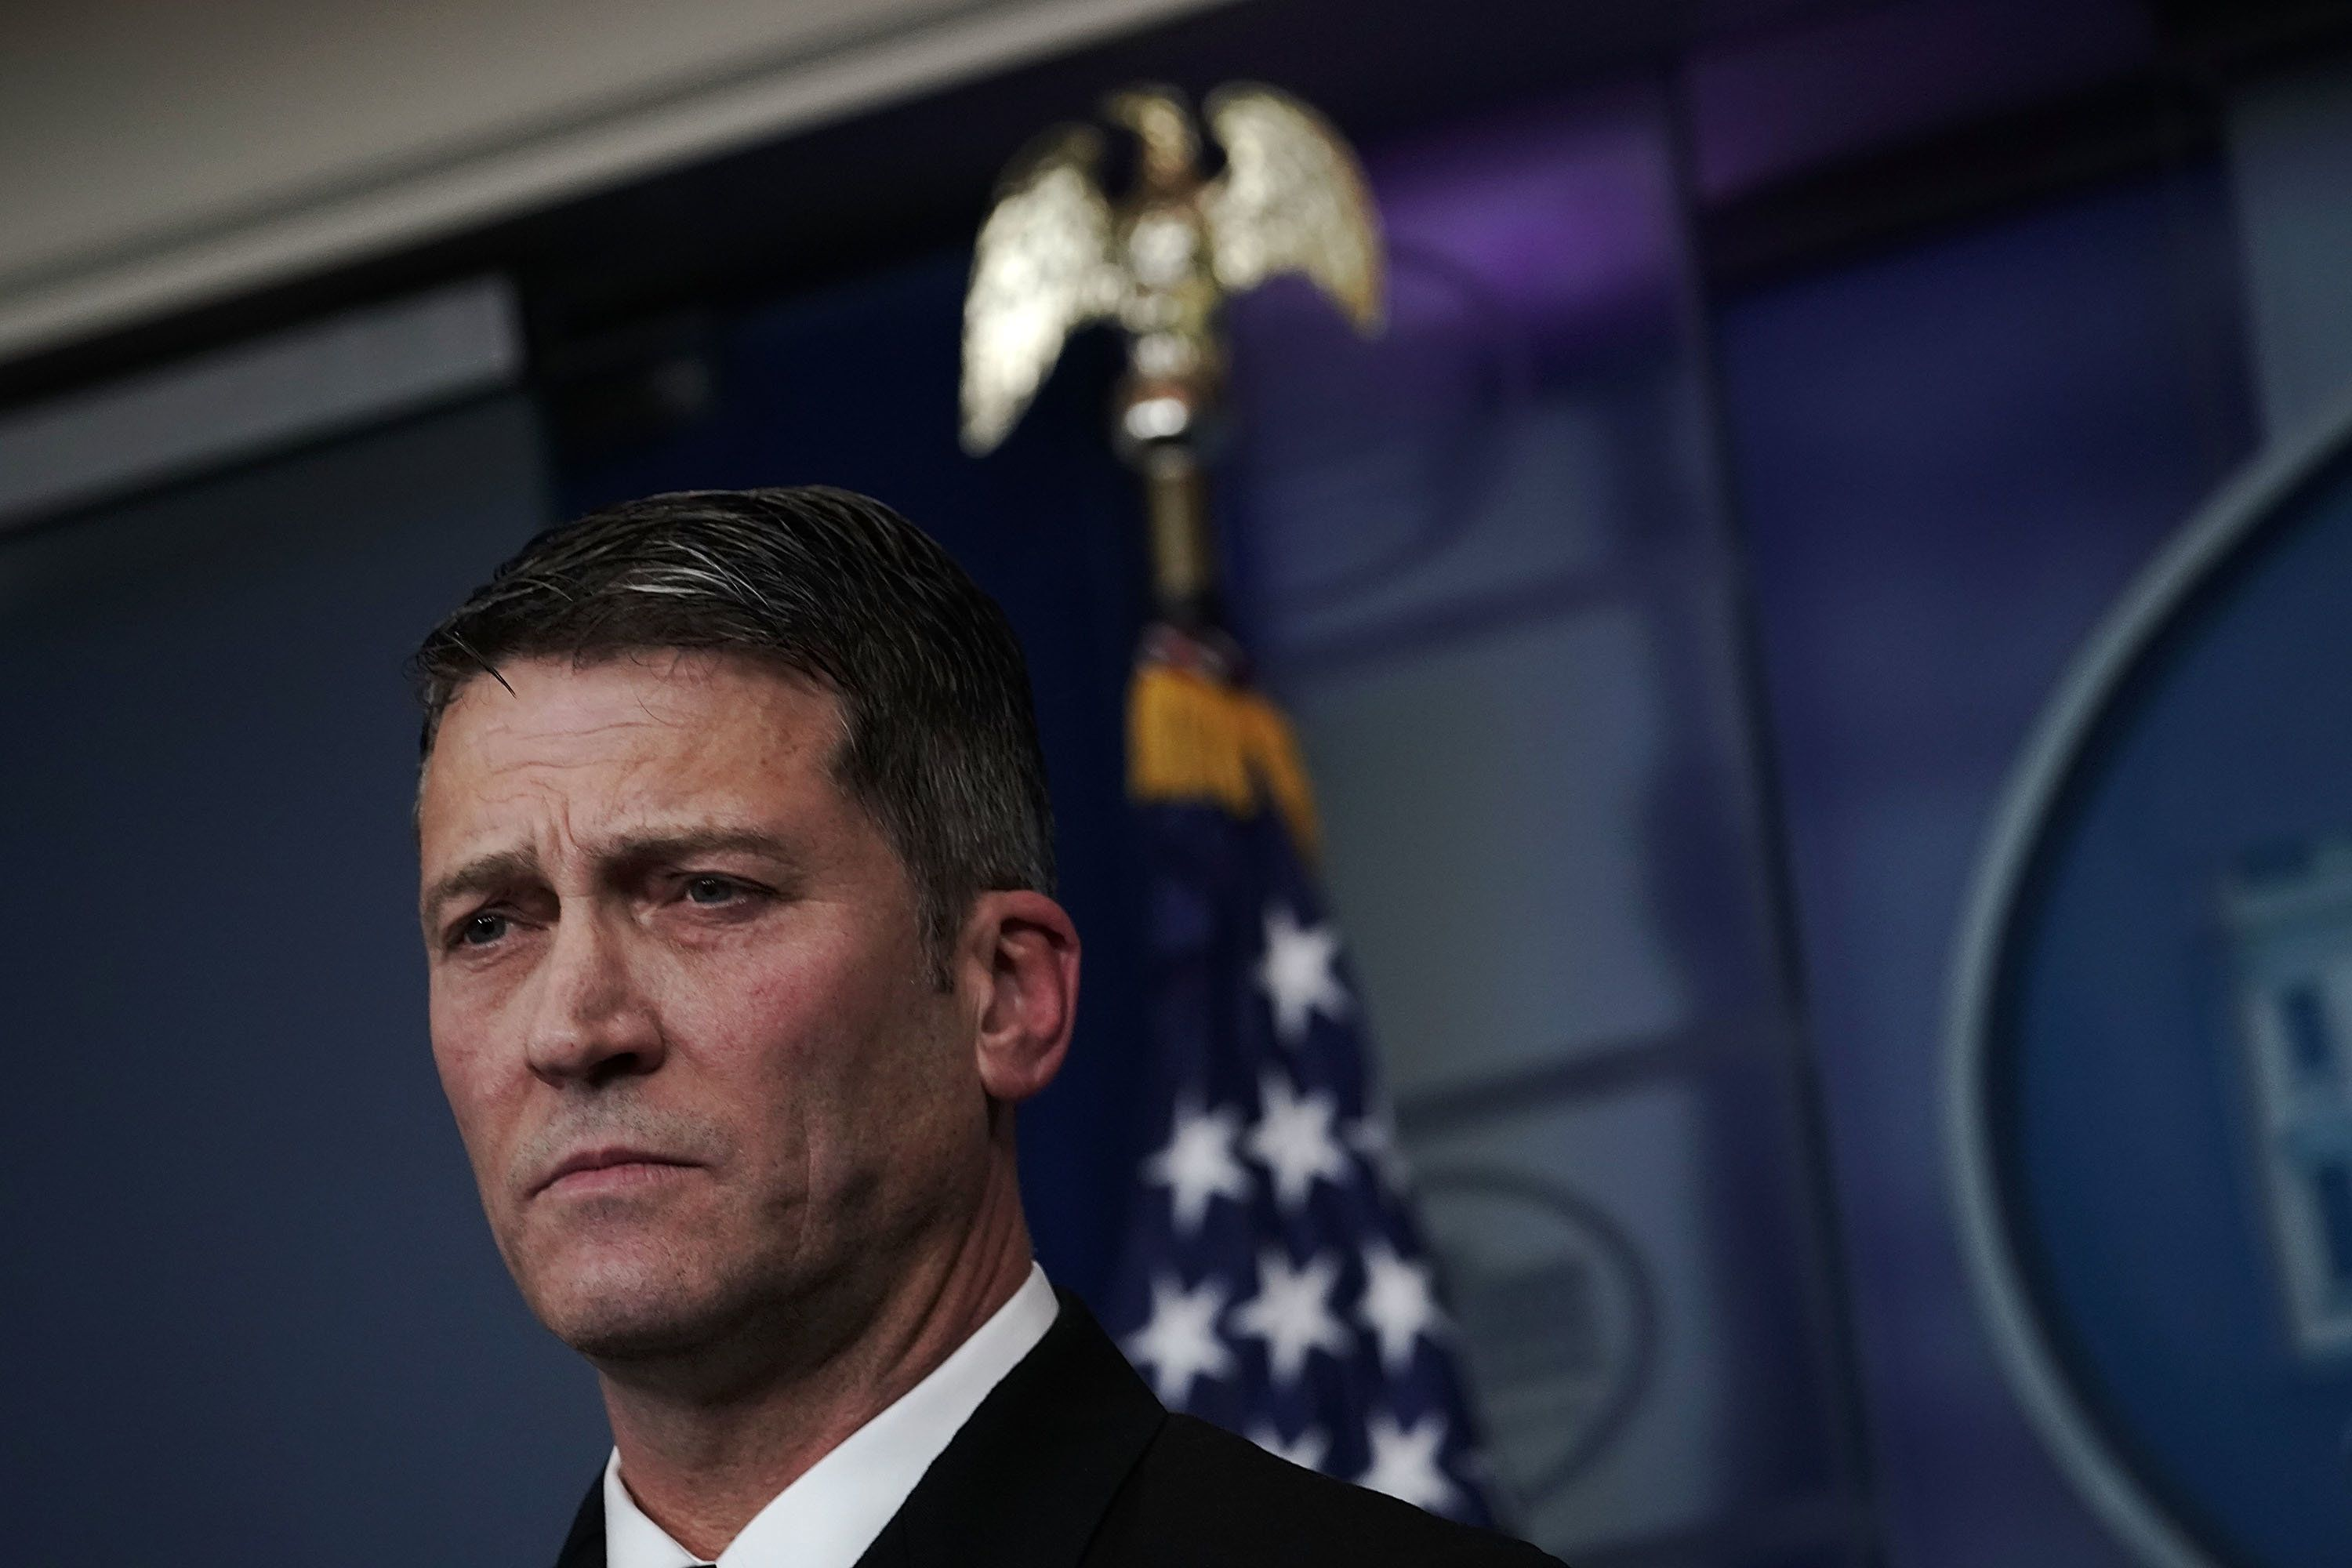 Dr. Ronny Jackson will not return to his old role as personal physician to the president several media outlets reported Sund